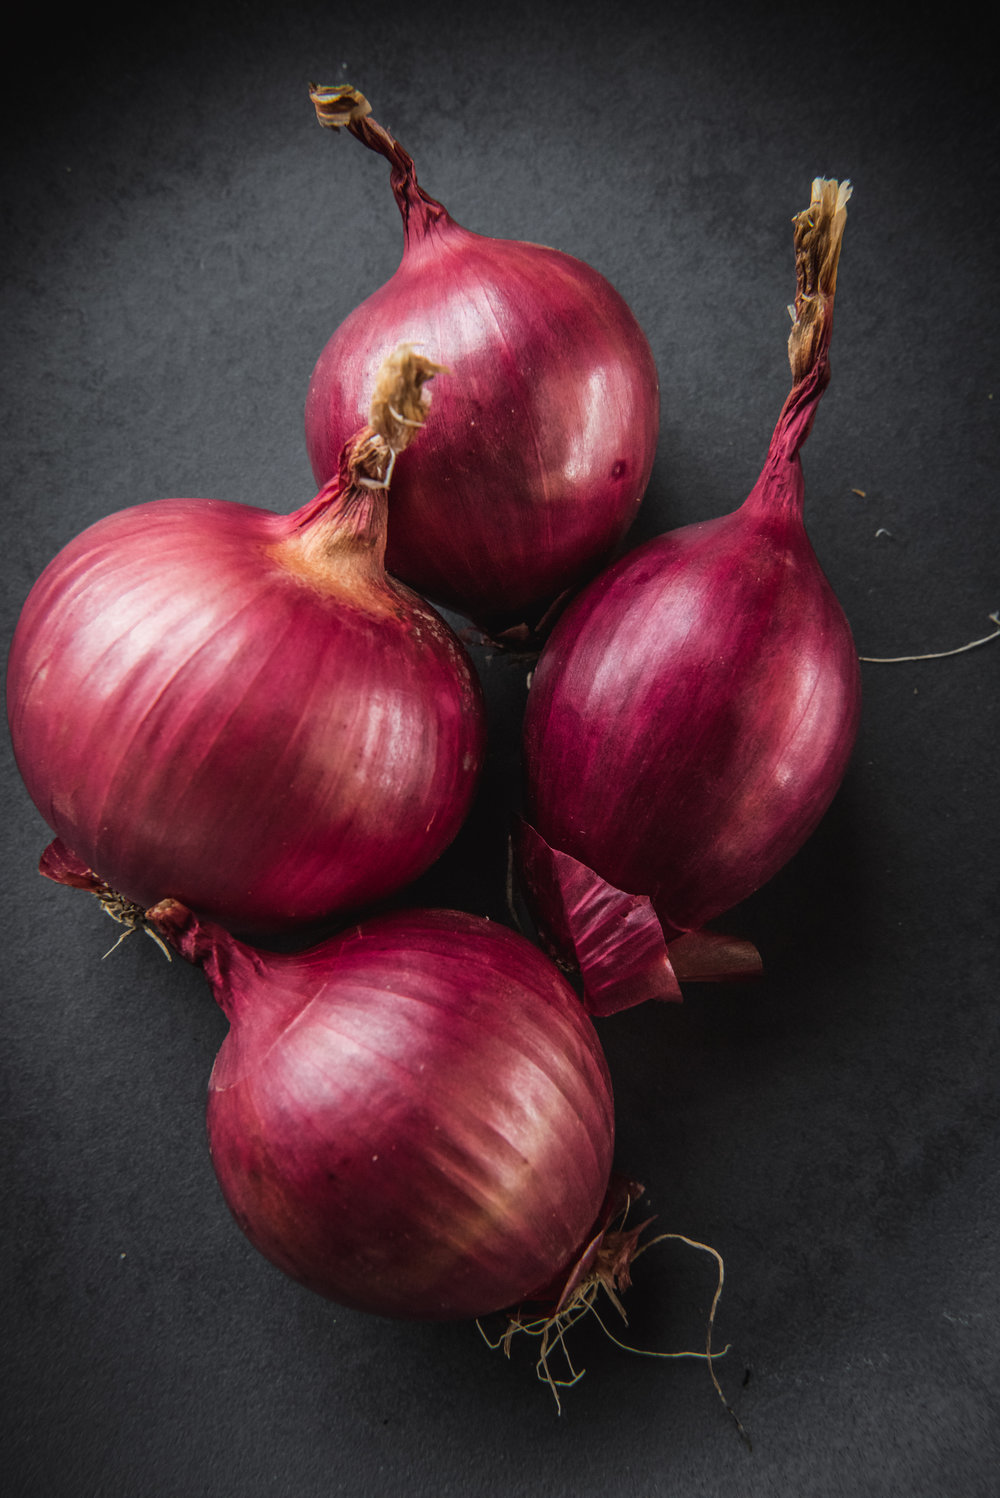 Zohlrabi? nope! red onions…